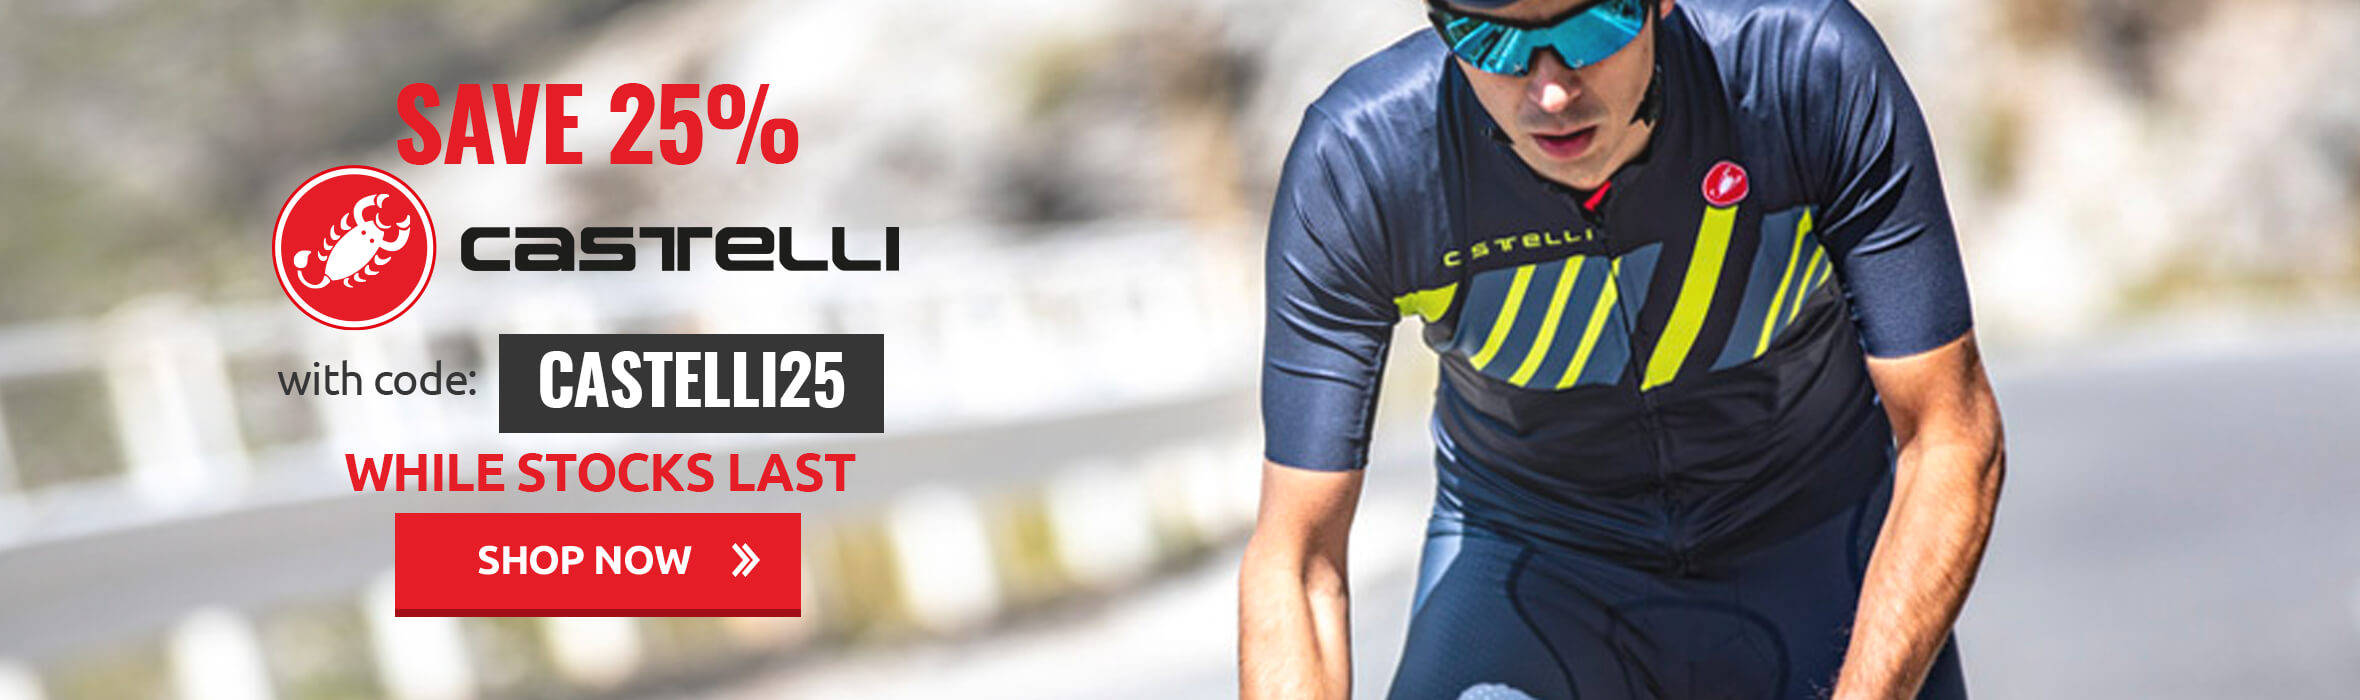 Save 25% with code Castelli25